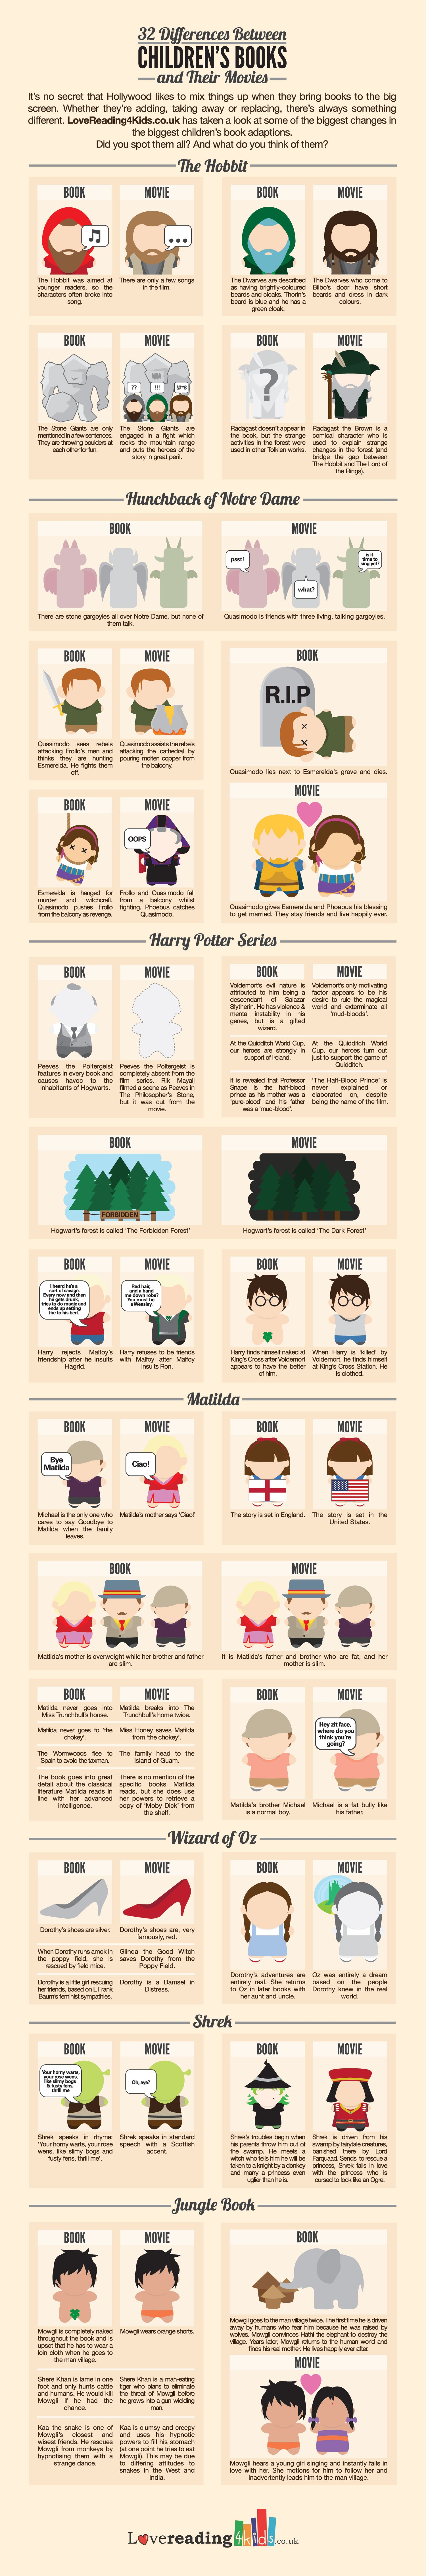 32-differences-between-books-and-their-movies